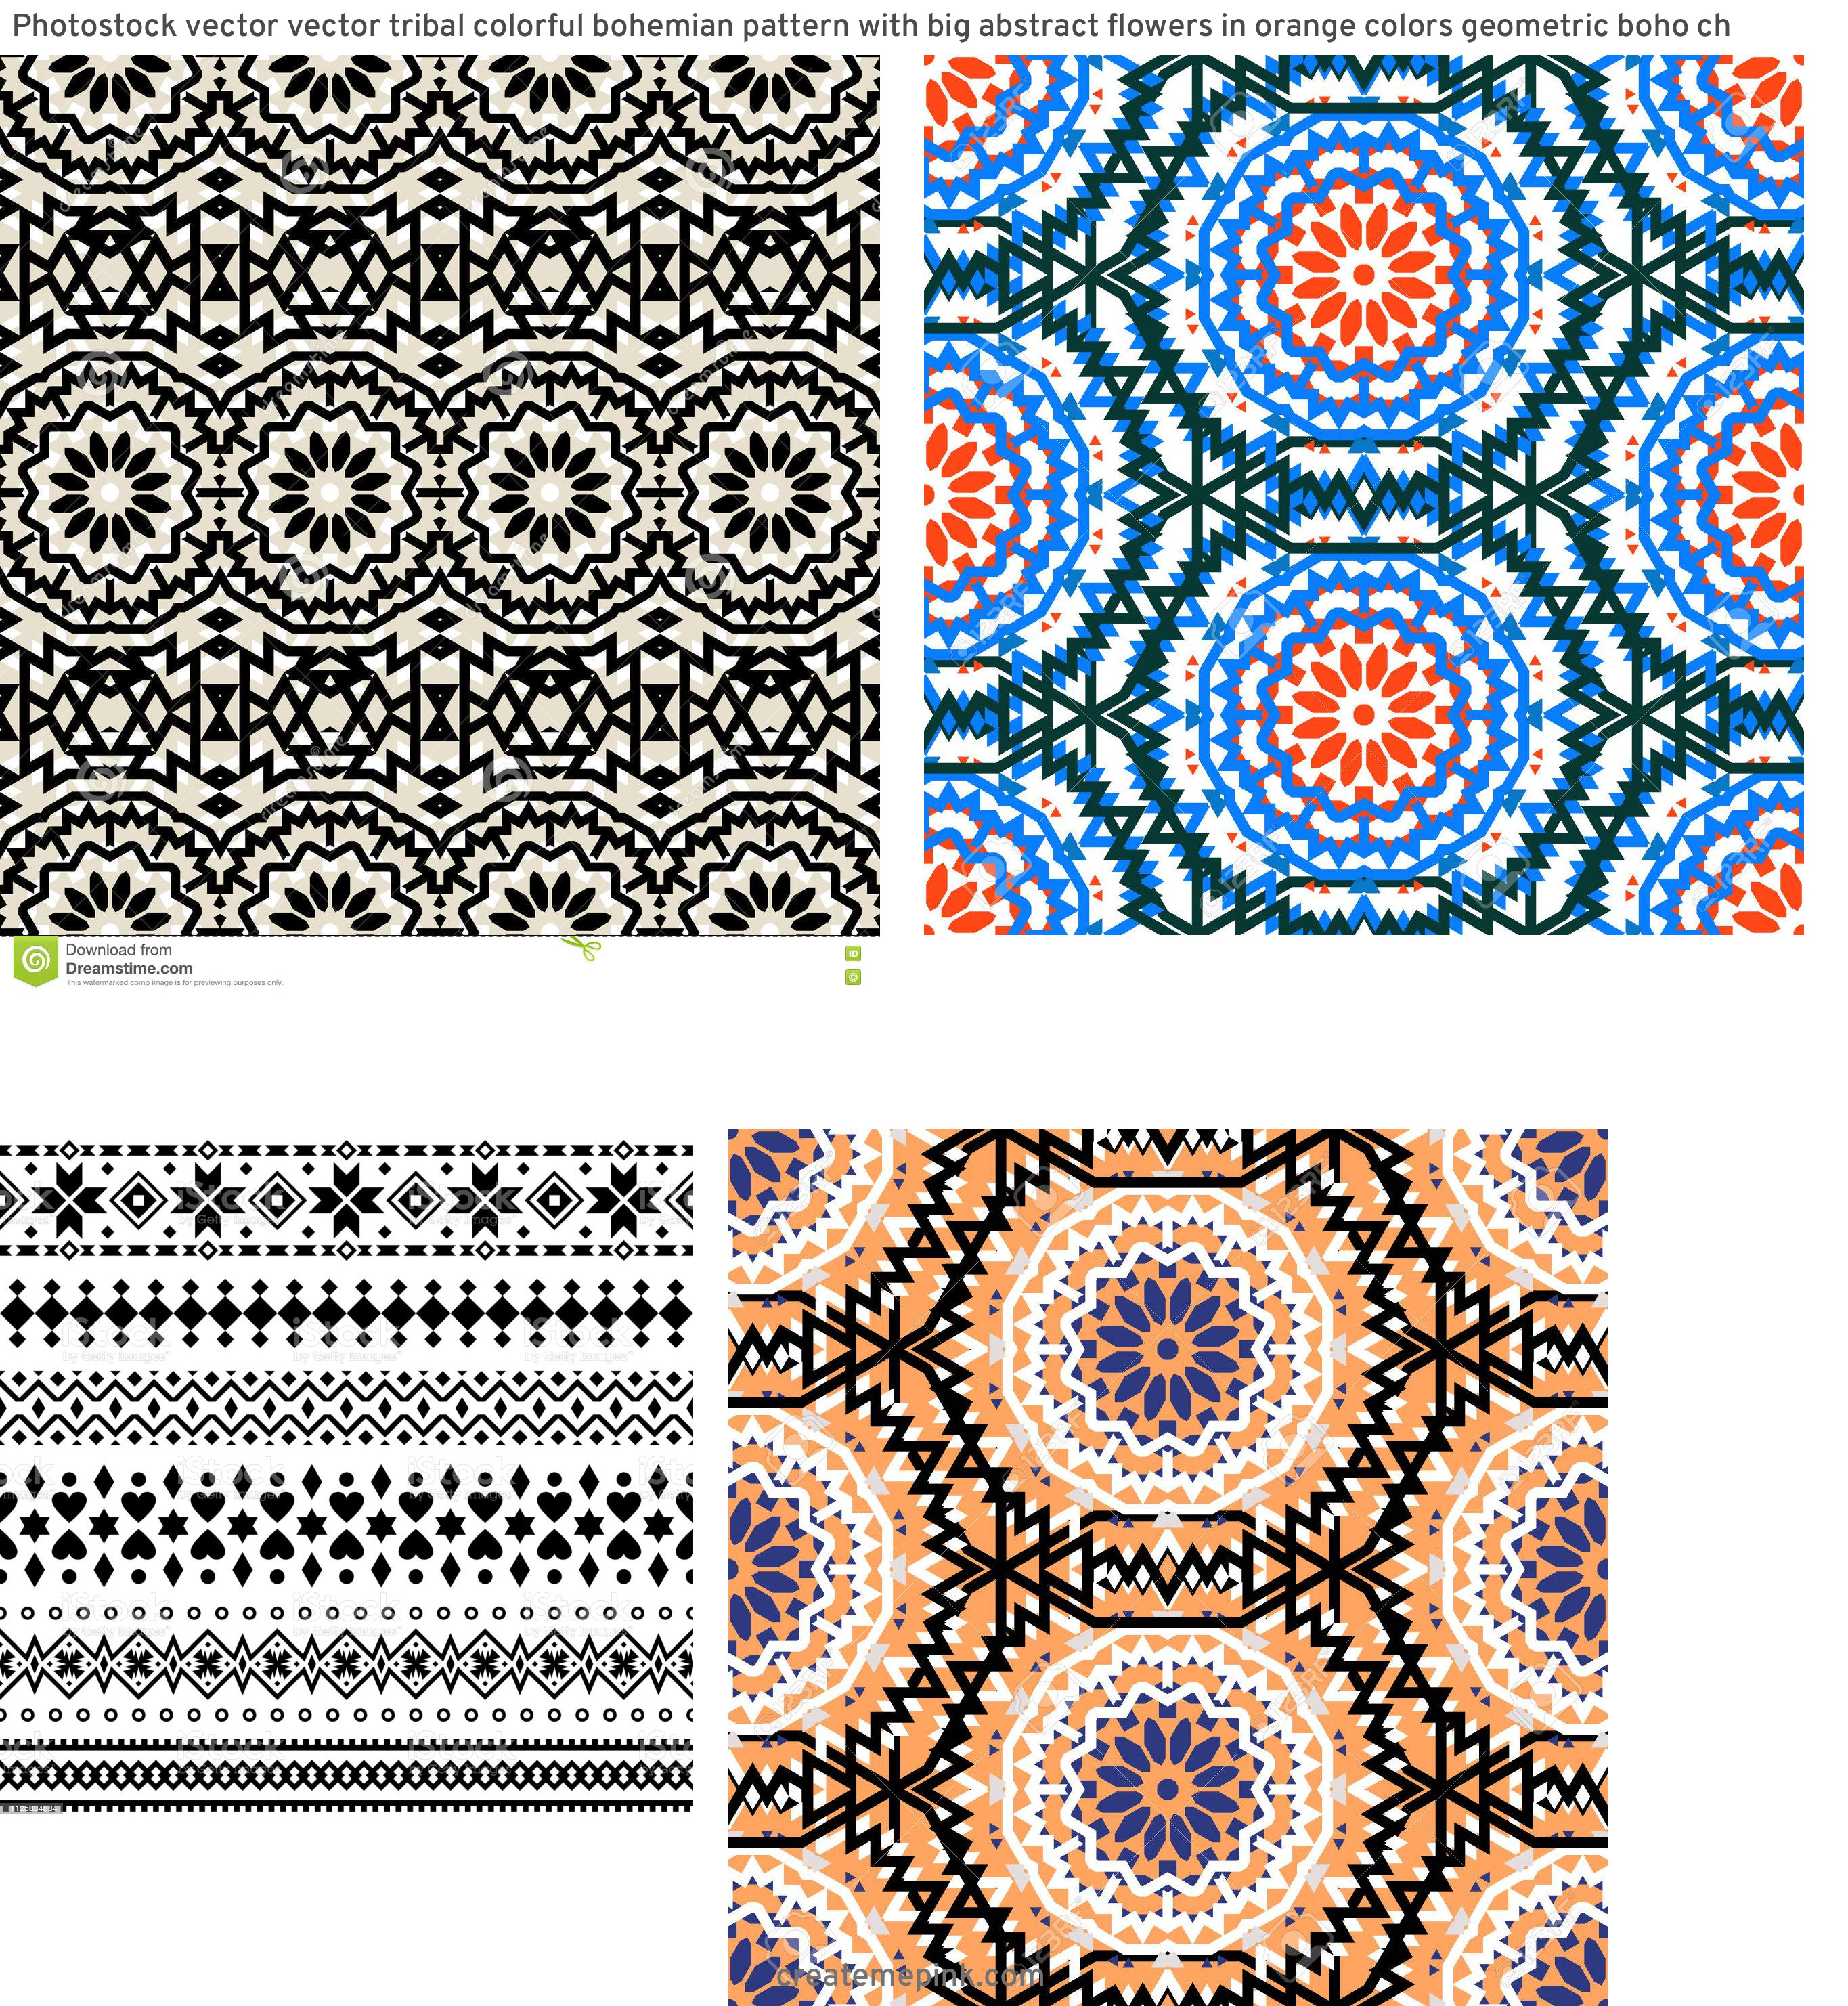 Bohemian Pattern Vector: Photostock Vector Vector Tribal Colorful Bohemian Pattern With Big Abstract Flowers In Orange Colors Geometric Boho Ch